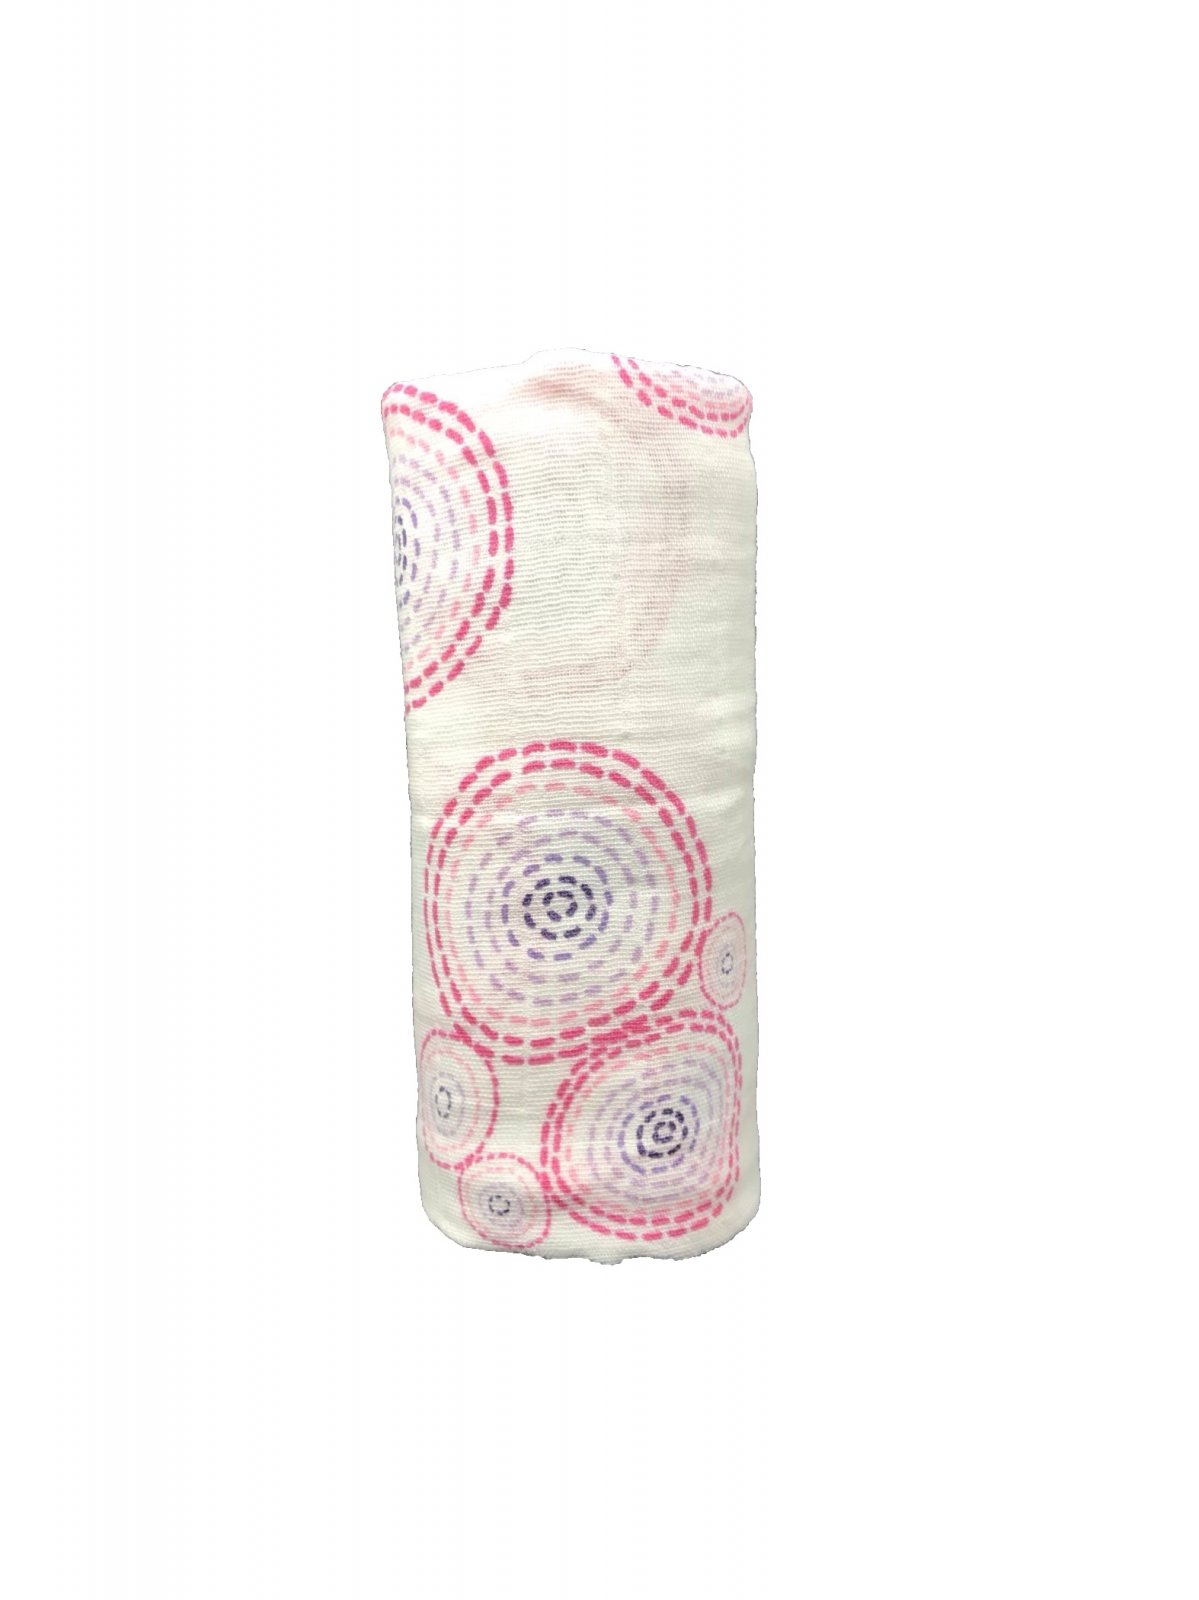 Ombres Bubbles Pink Swaddle